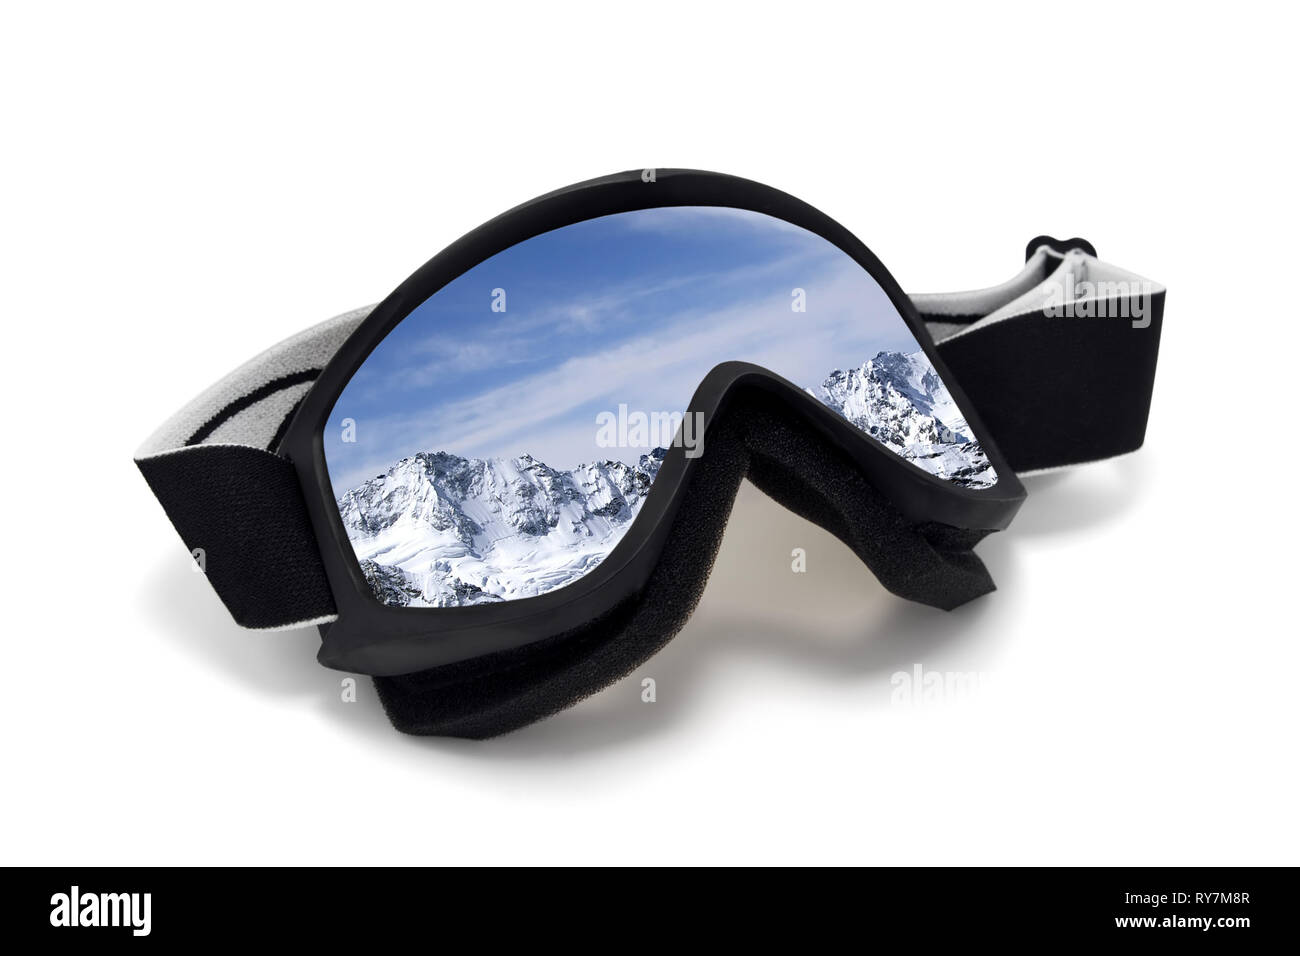 Ski goggles with reflection of winter snowy mountains. Isolated on white background - Stock Image